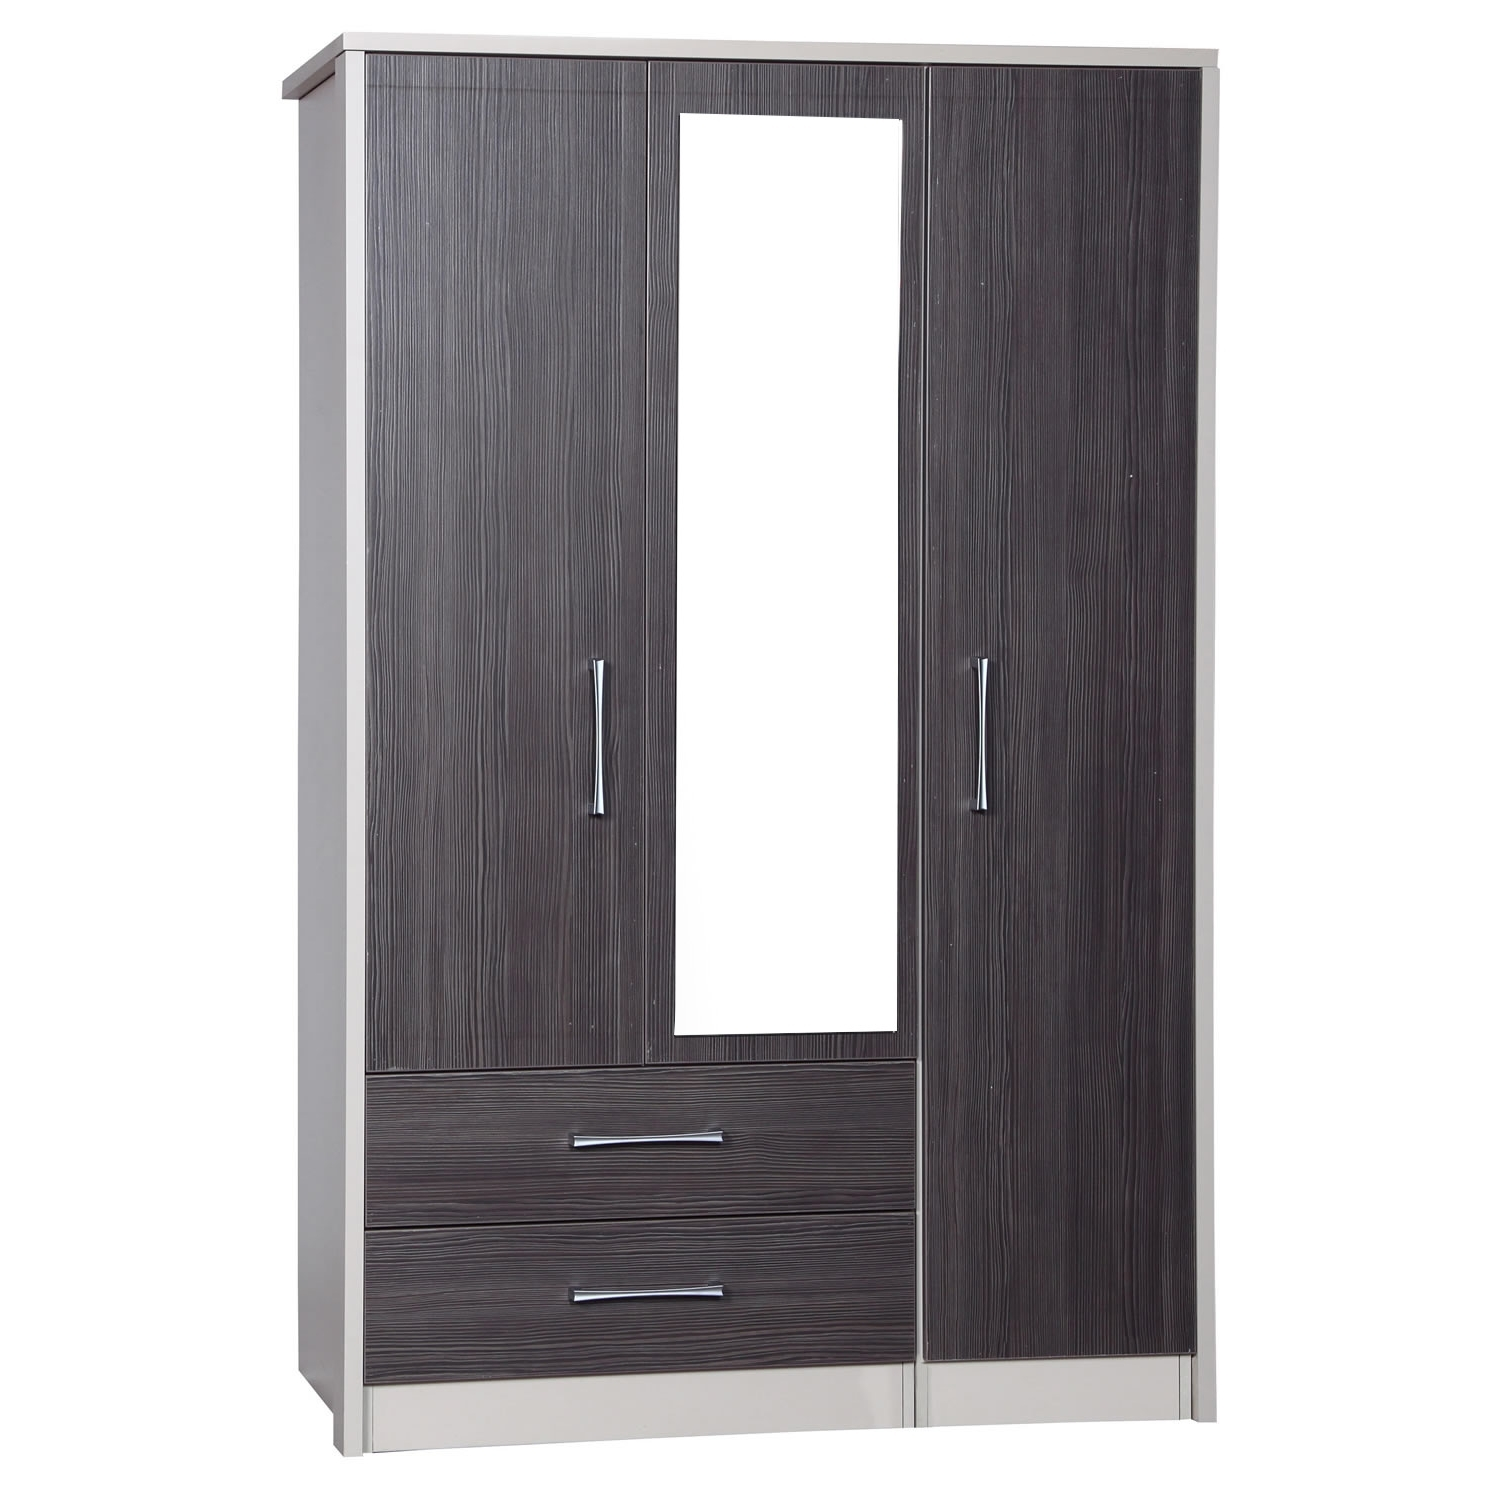 Most Recently Released Wardrobes 3 Door With Mirror Intended For Avola Grey 3 Door 2 Drawer Combi Wardrobe With Mirror – Next Day (View 5 of 15)